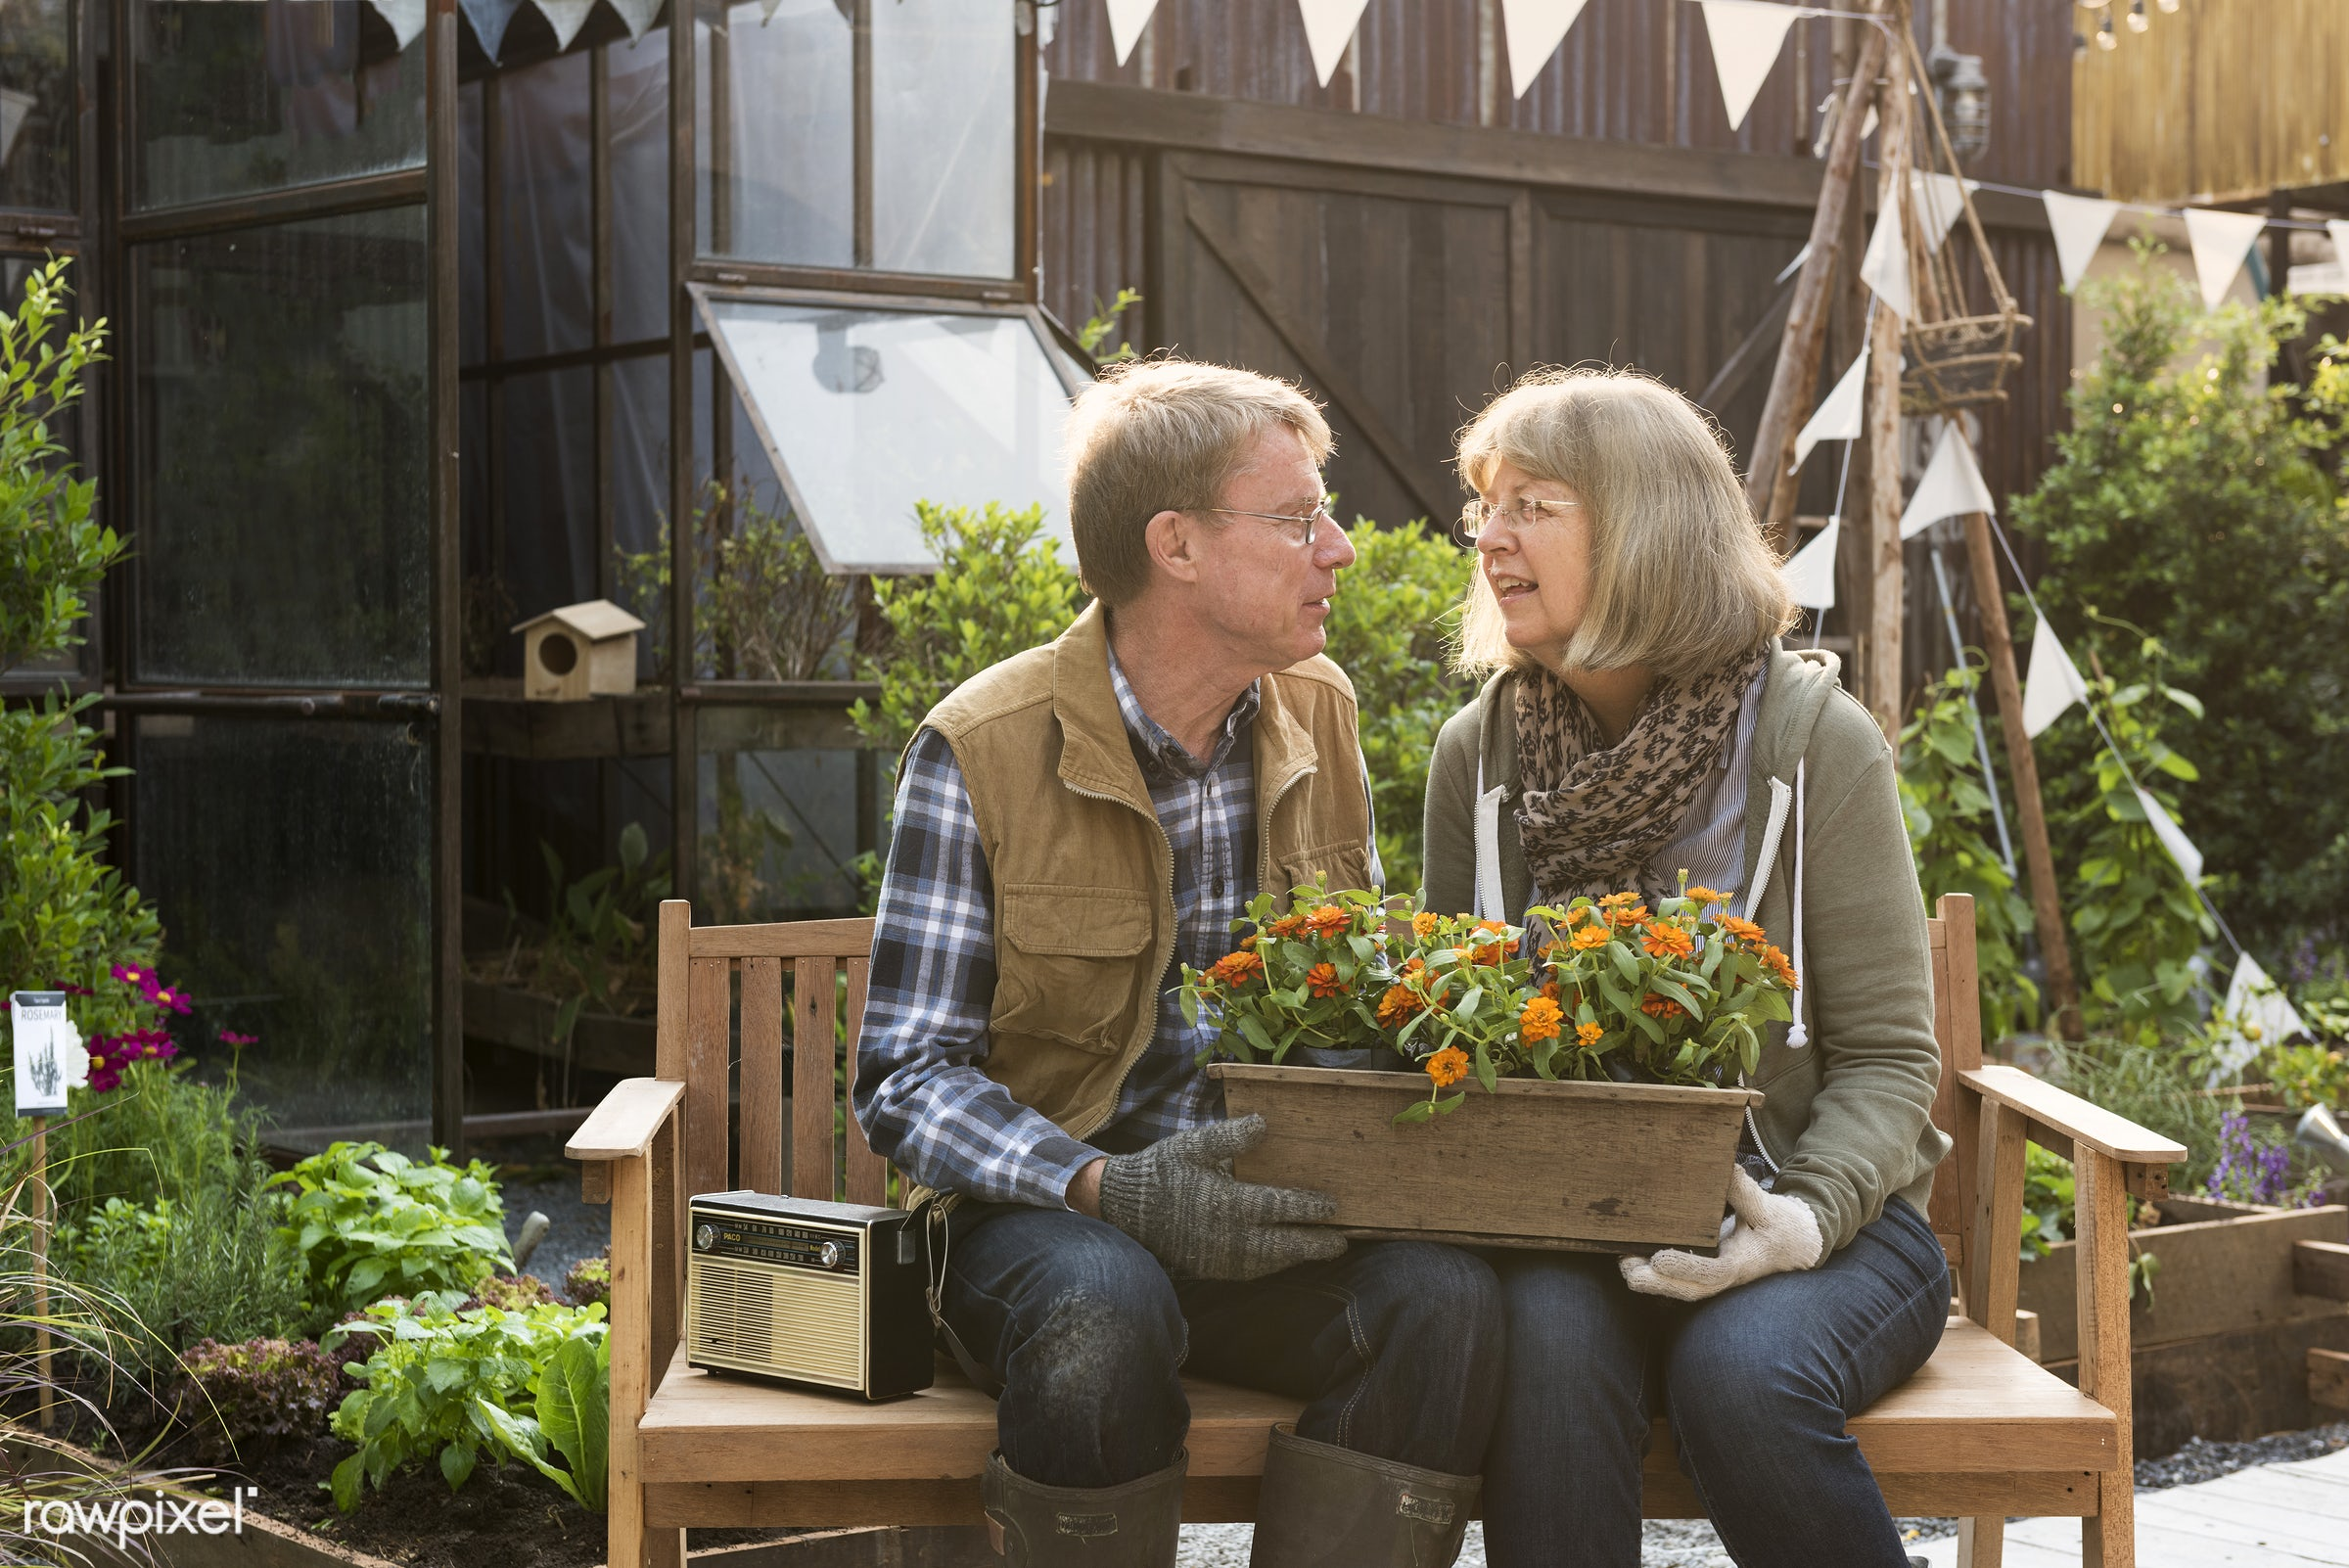 countryside, person, greenhouse, relax, botanical, plantation, together, caucasian, retirement, farmer, nature, tree, woman...